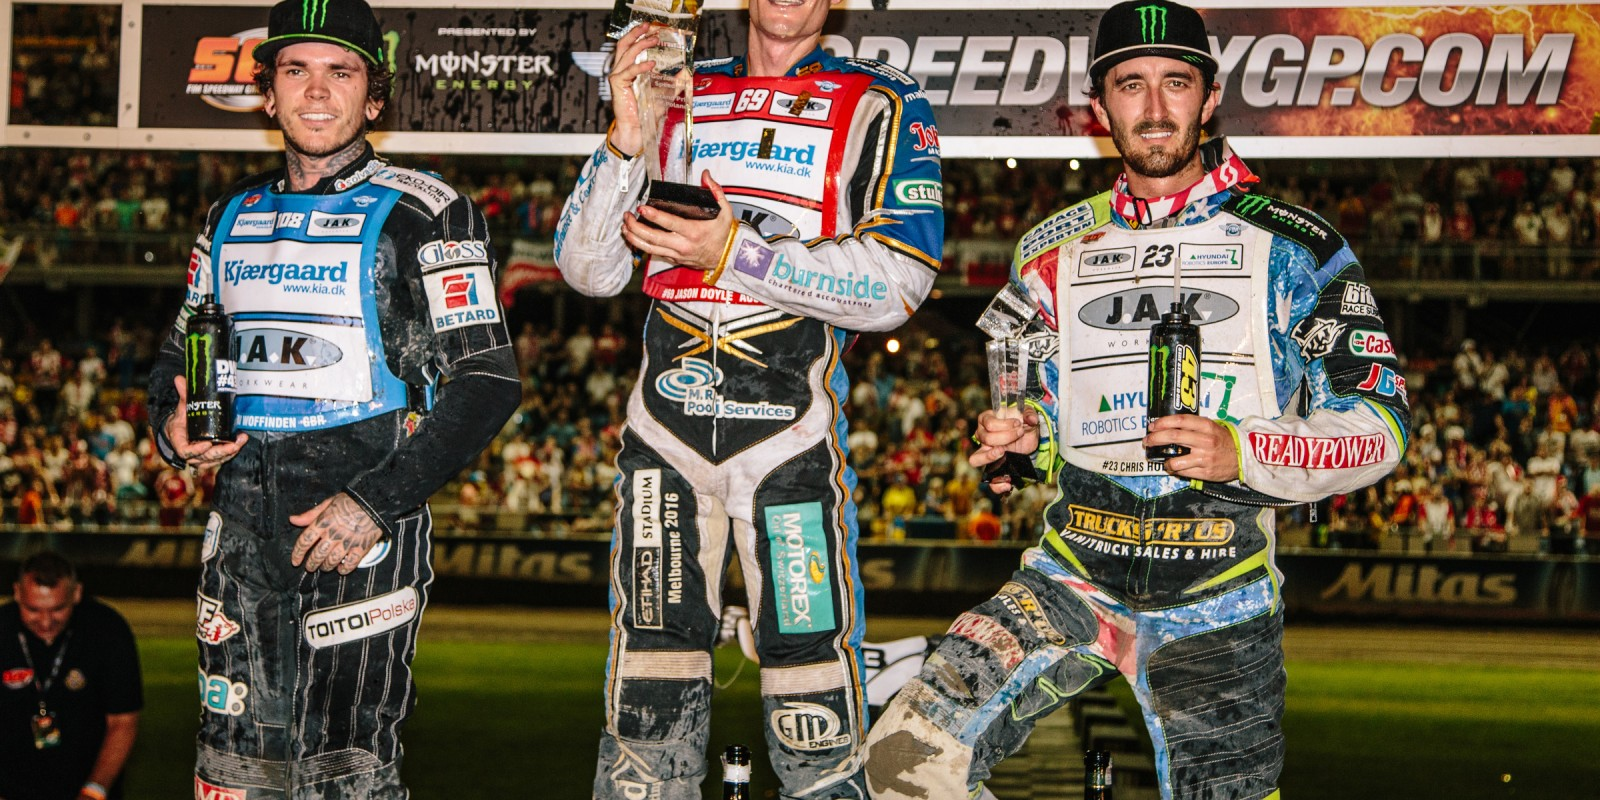 Images from the 2016 Polish Speedway GP